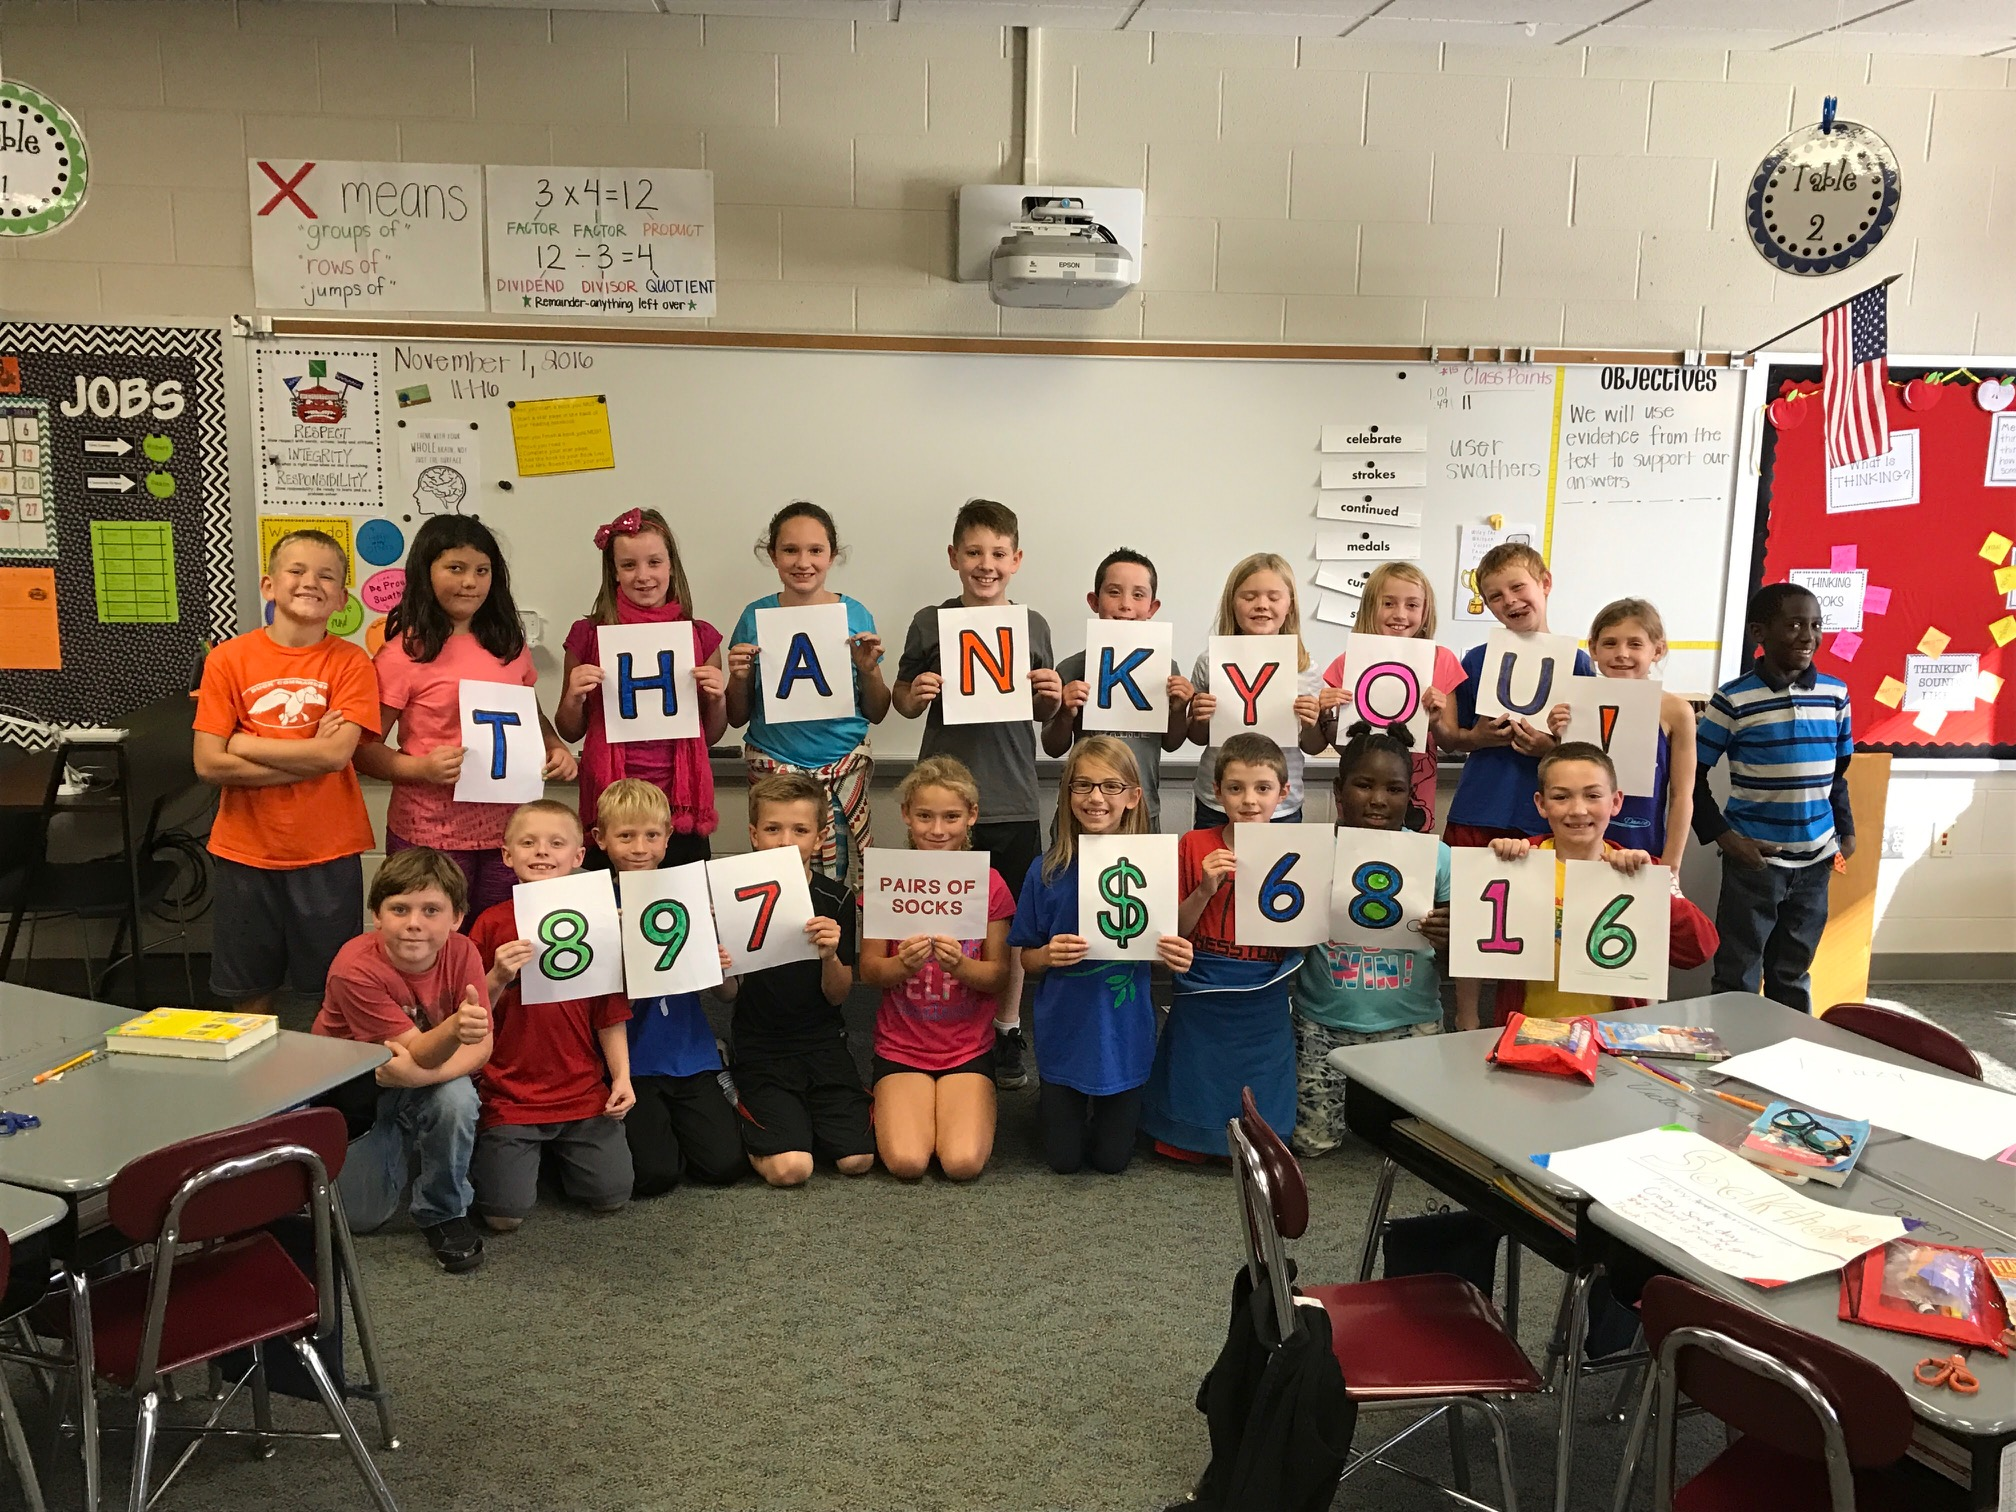 Mrs. Boese's Third Grade Class at Hesston Elementary School raised 897 pairs of socks and $68.16 for the New Hope Shelter in Newton, Kansas! After the drive, they visited the shelter to meet and talk to the residents to see first-hand who they are helping!